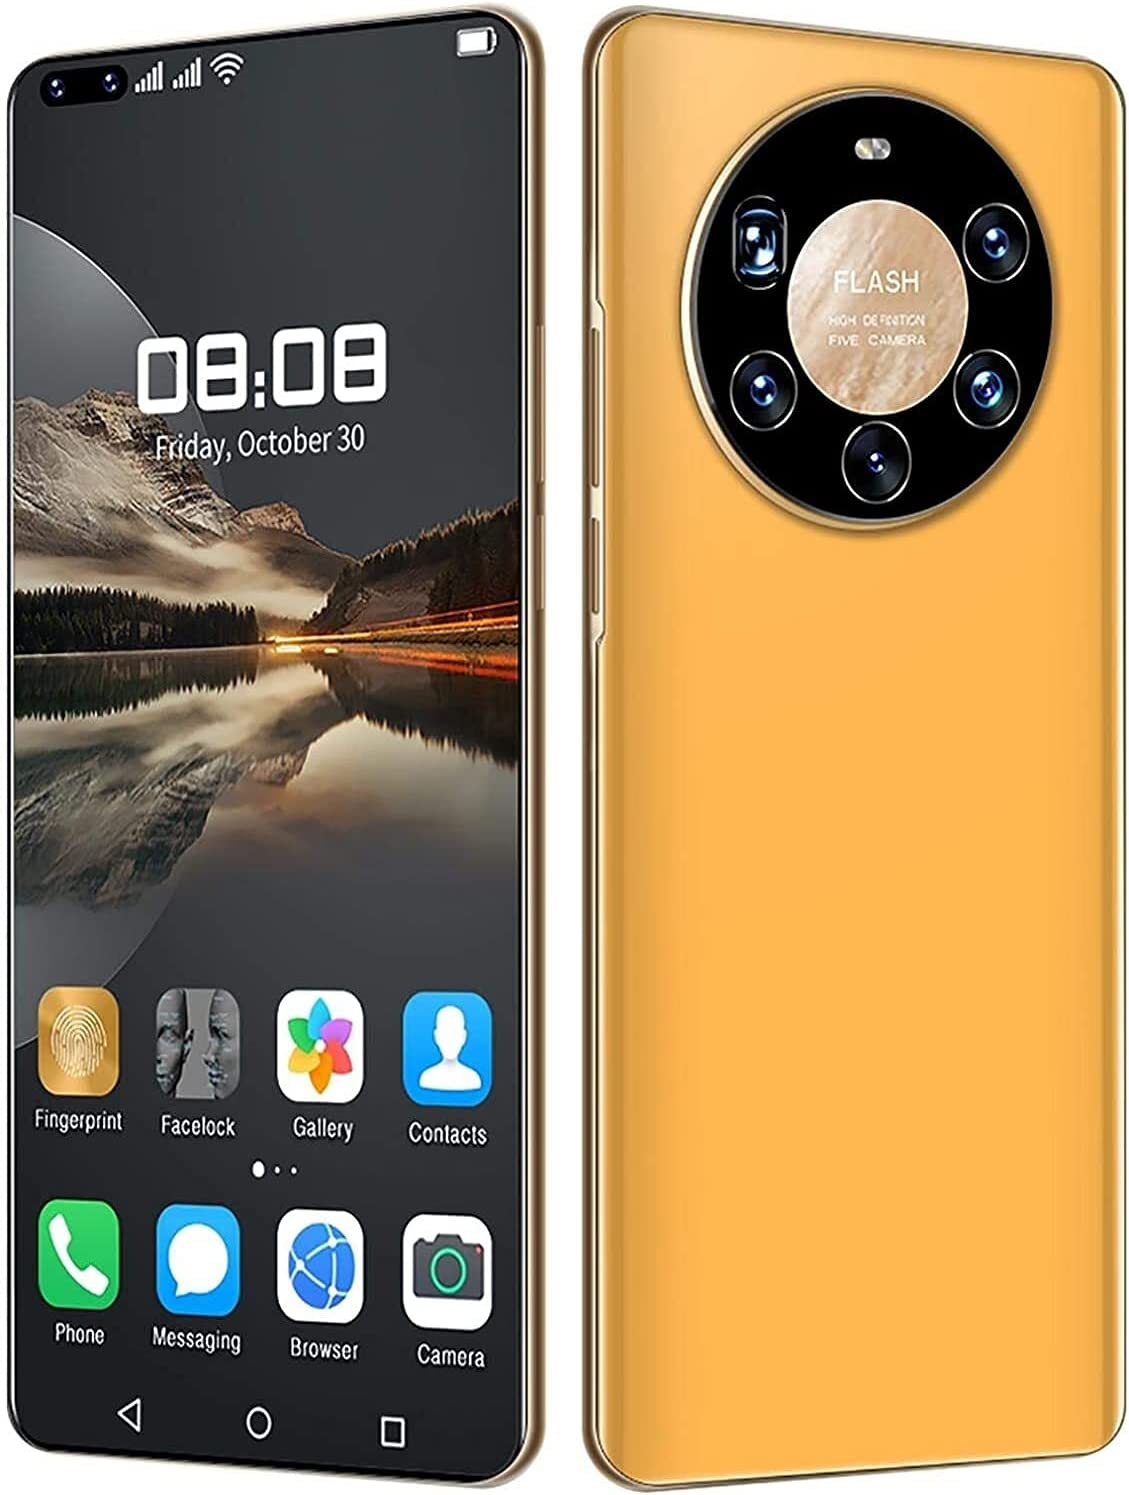 Outskirts Sim Free Unlocked Virginia Beach Mall Android Discount mail order Battery Smartphones 4800mAh